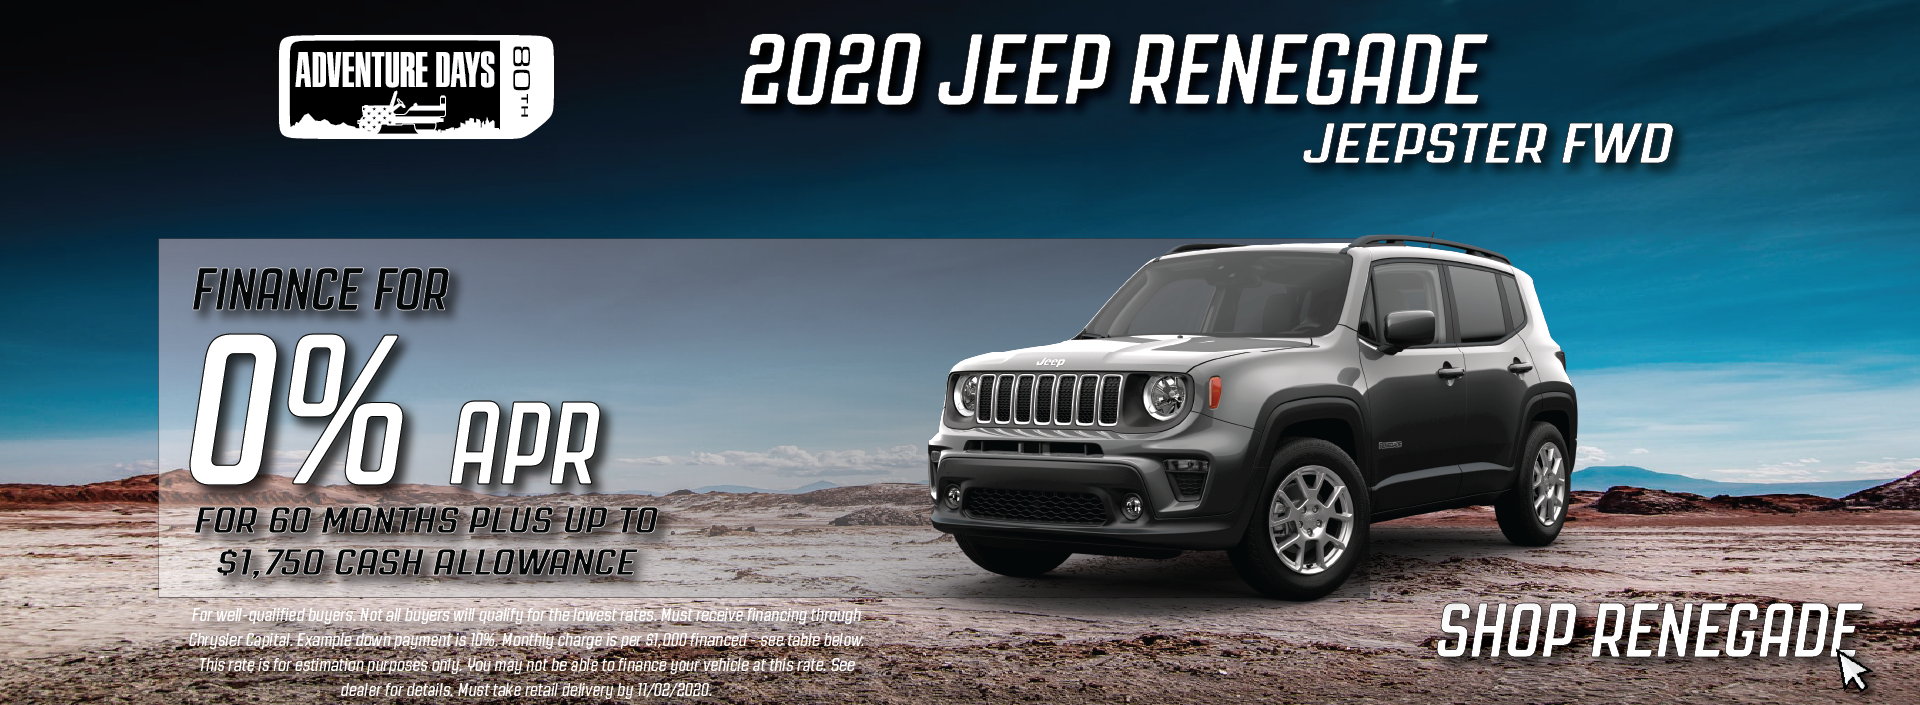 Cullman – Jeep Renegade October